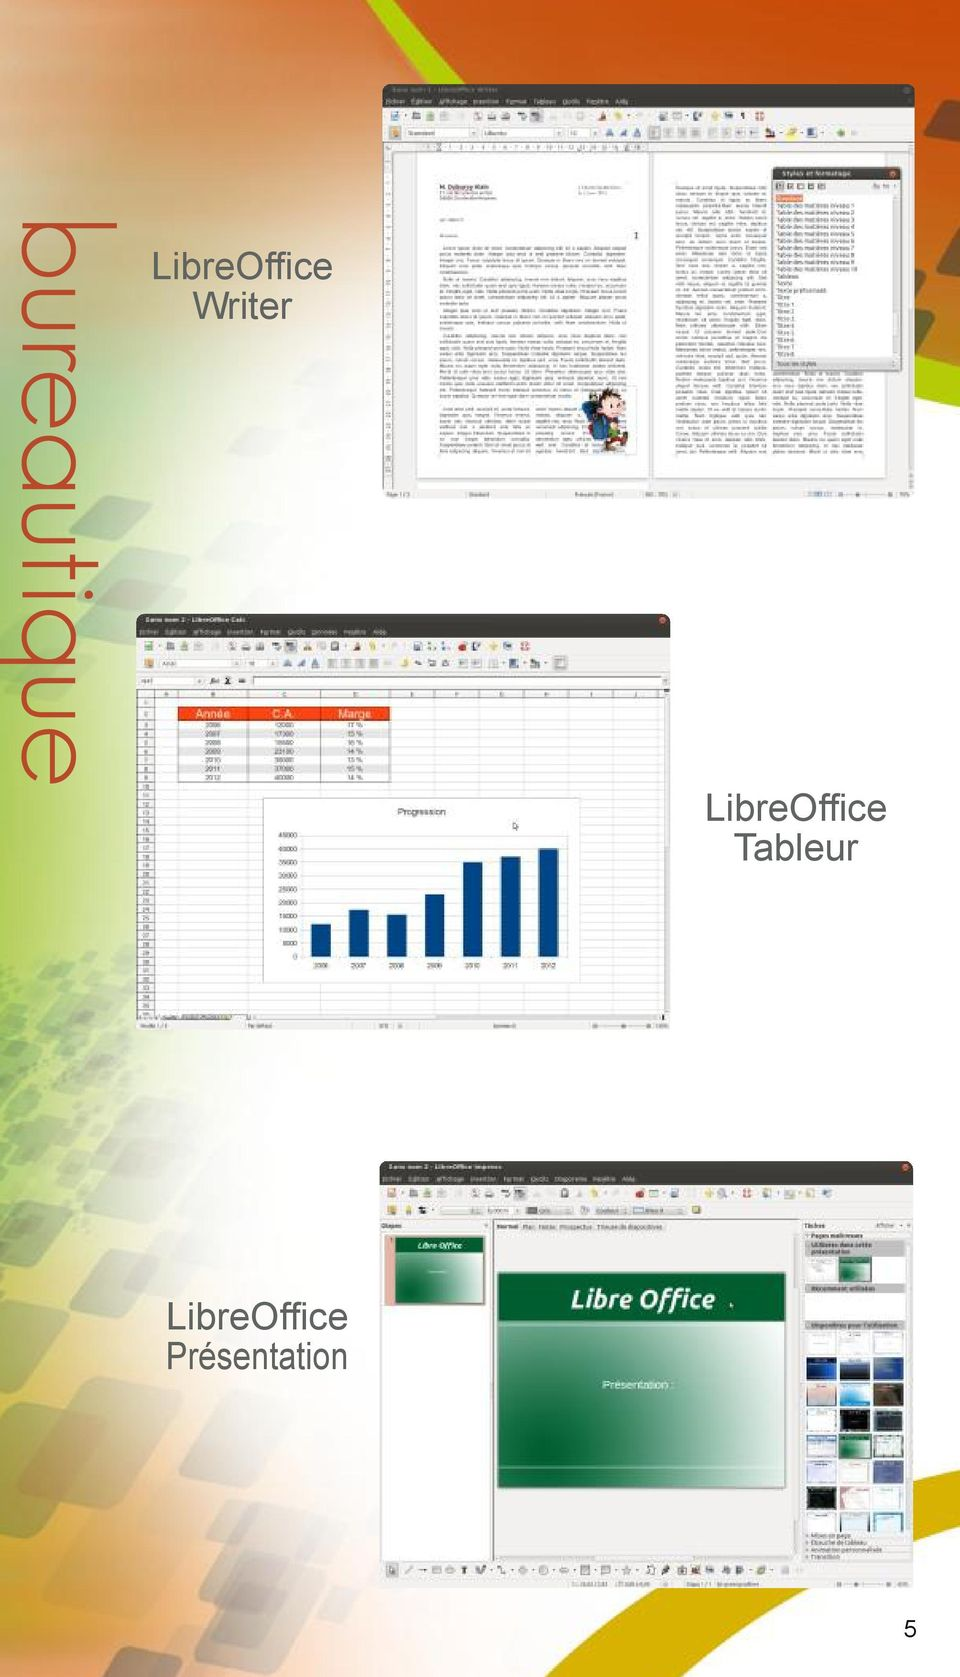 LibreOffice Tableur